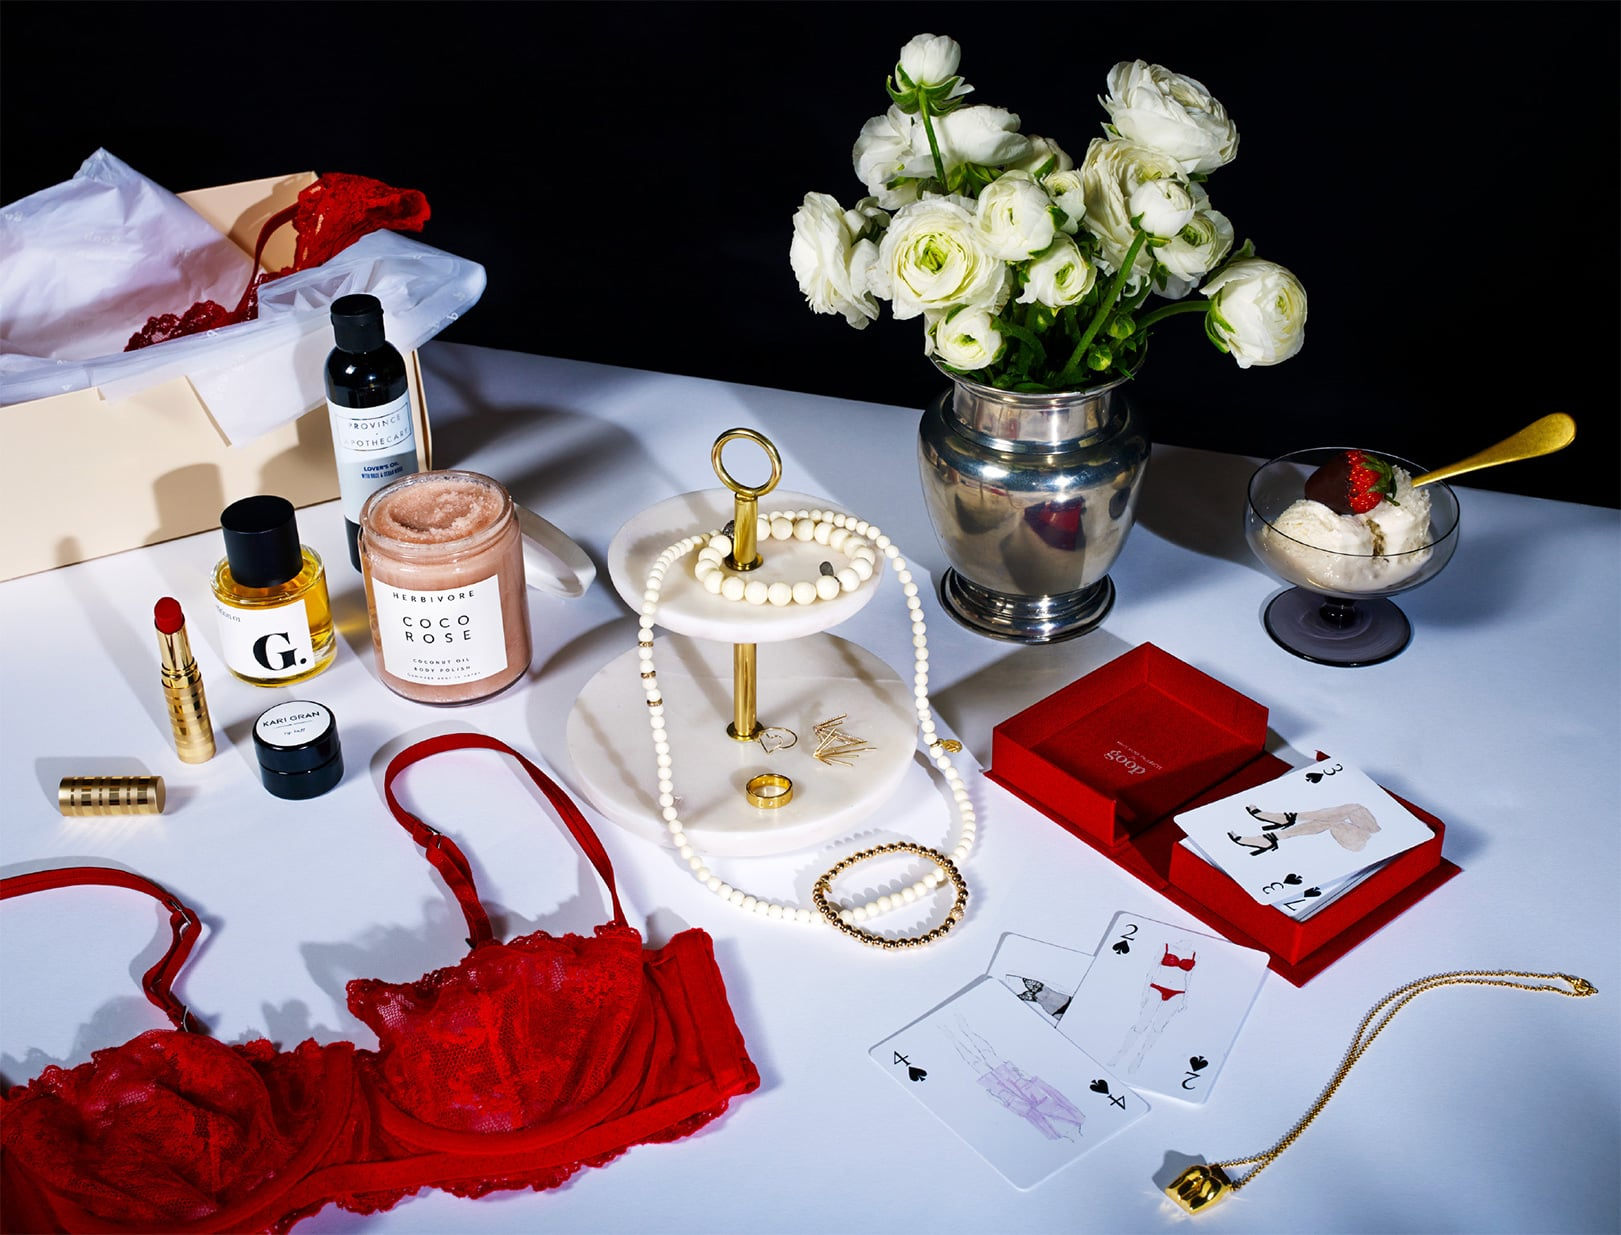 The Women's Valentine's Day Gift Guide | Goop